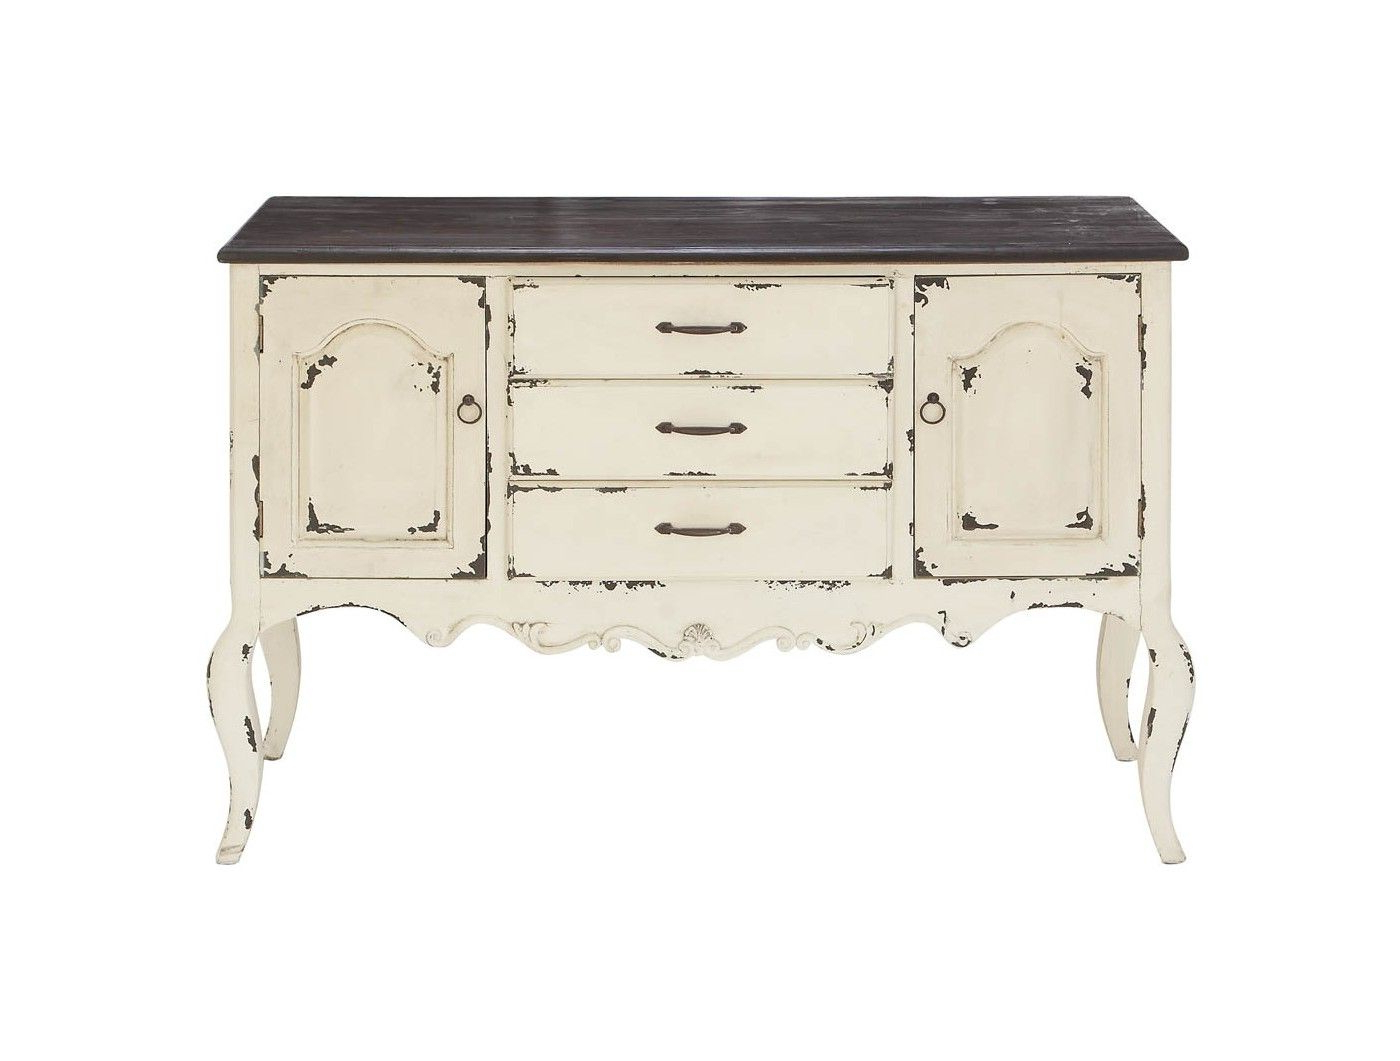 Wood 2 Doors 3 Drawers Buffet White/brown – Olivia & May Pertaining To Industrial Style 3 Drawer Buffets (View 12 of 20)